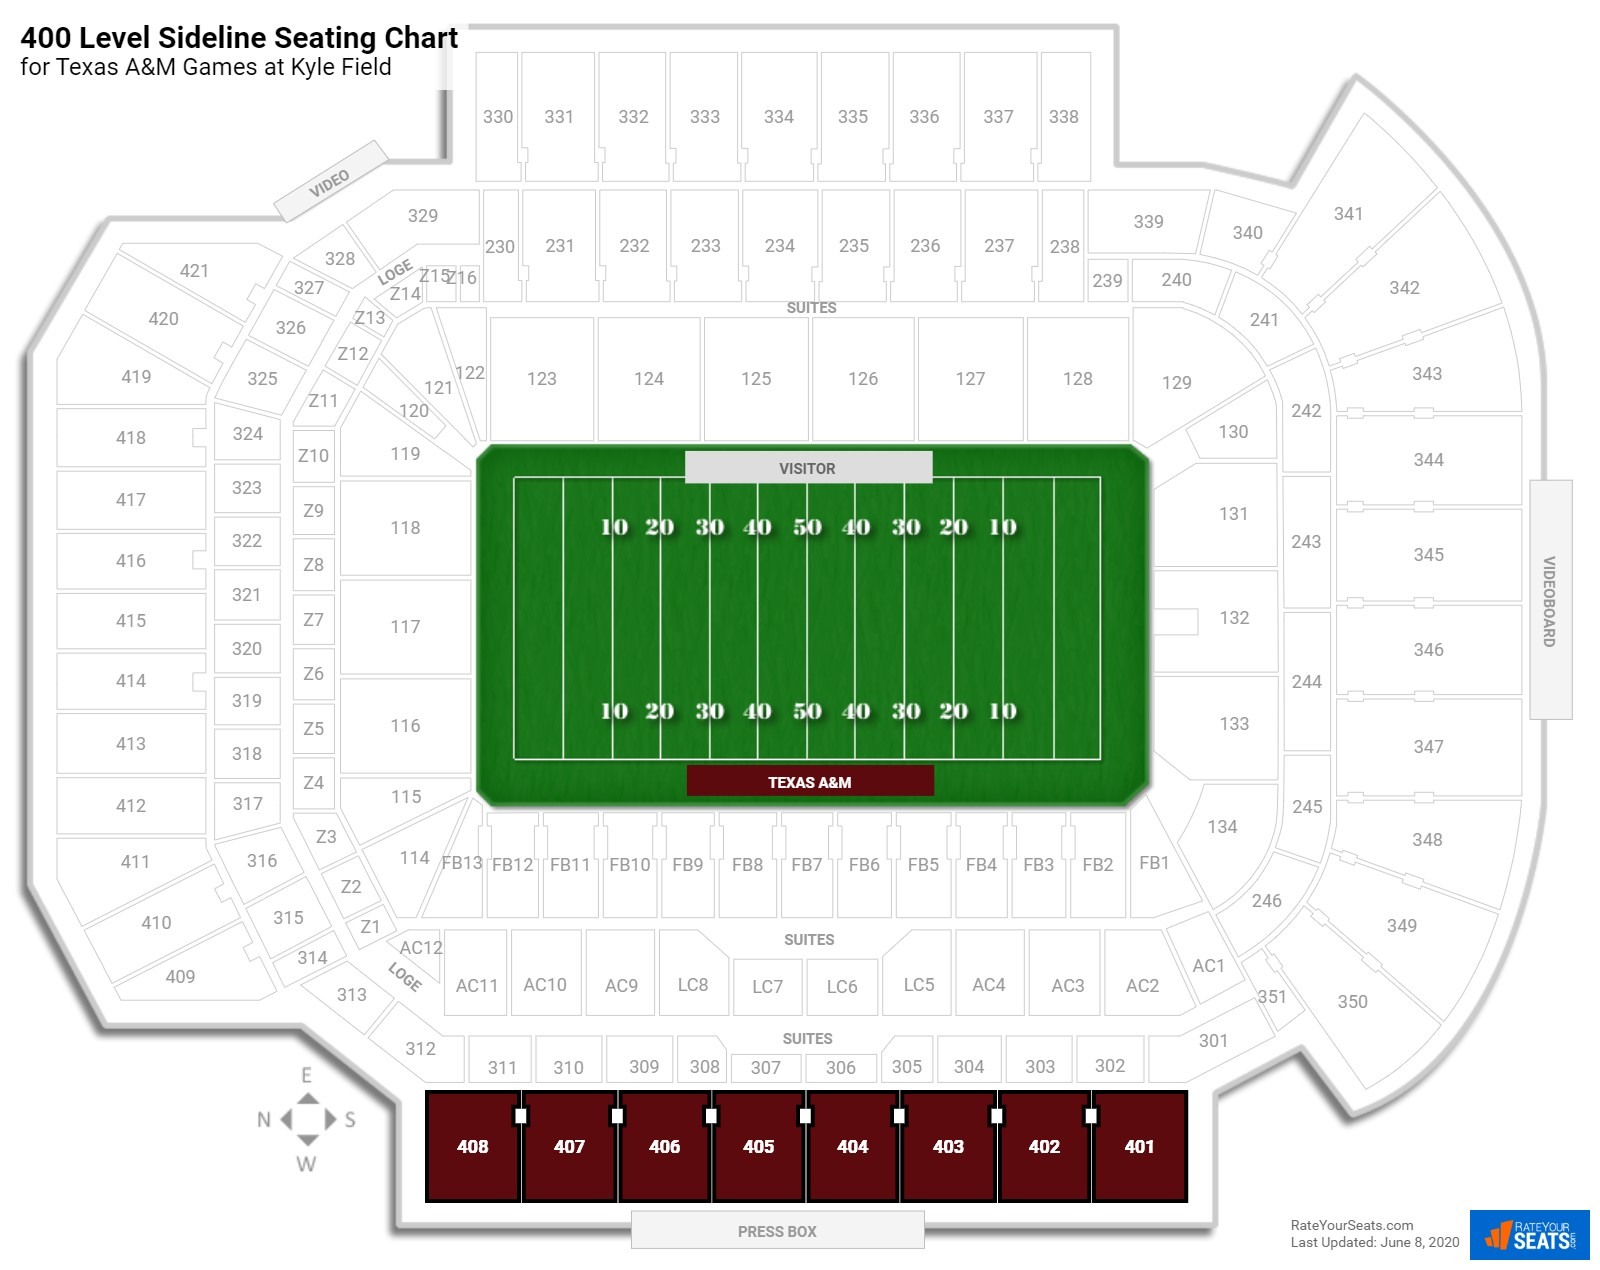 Kyle Field 400 Level Sideline seating chart